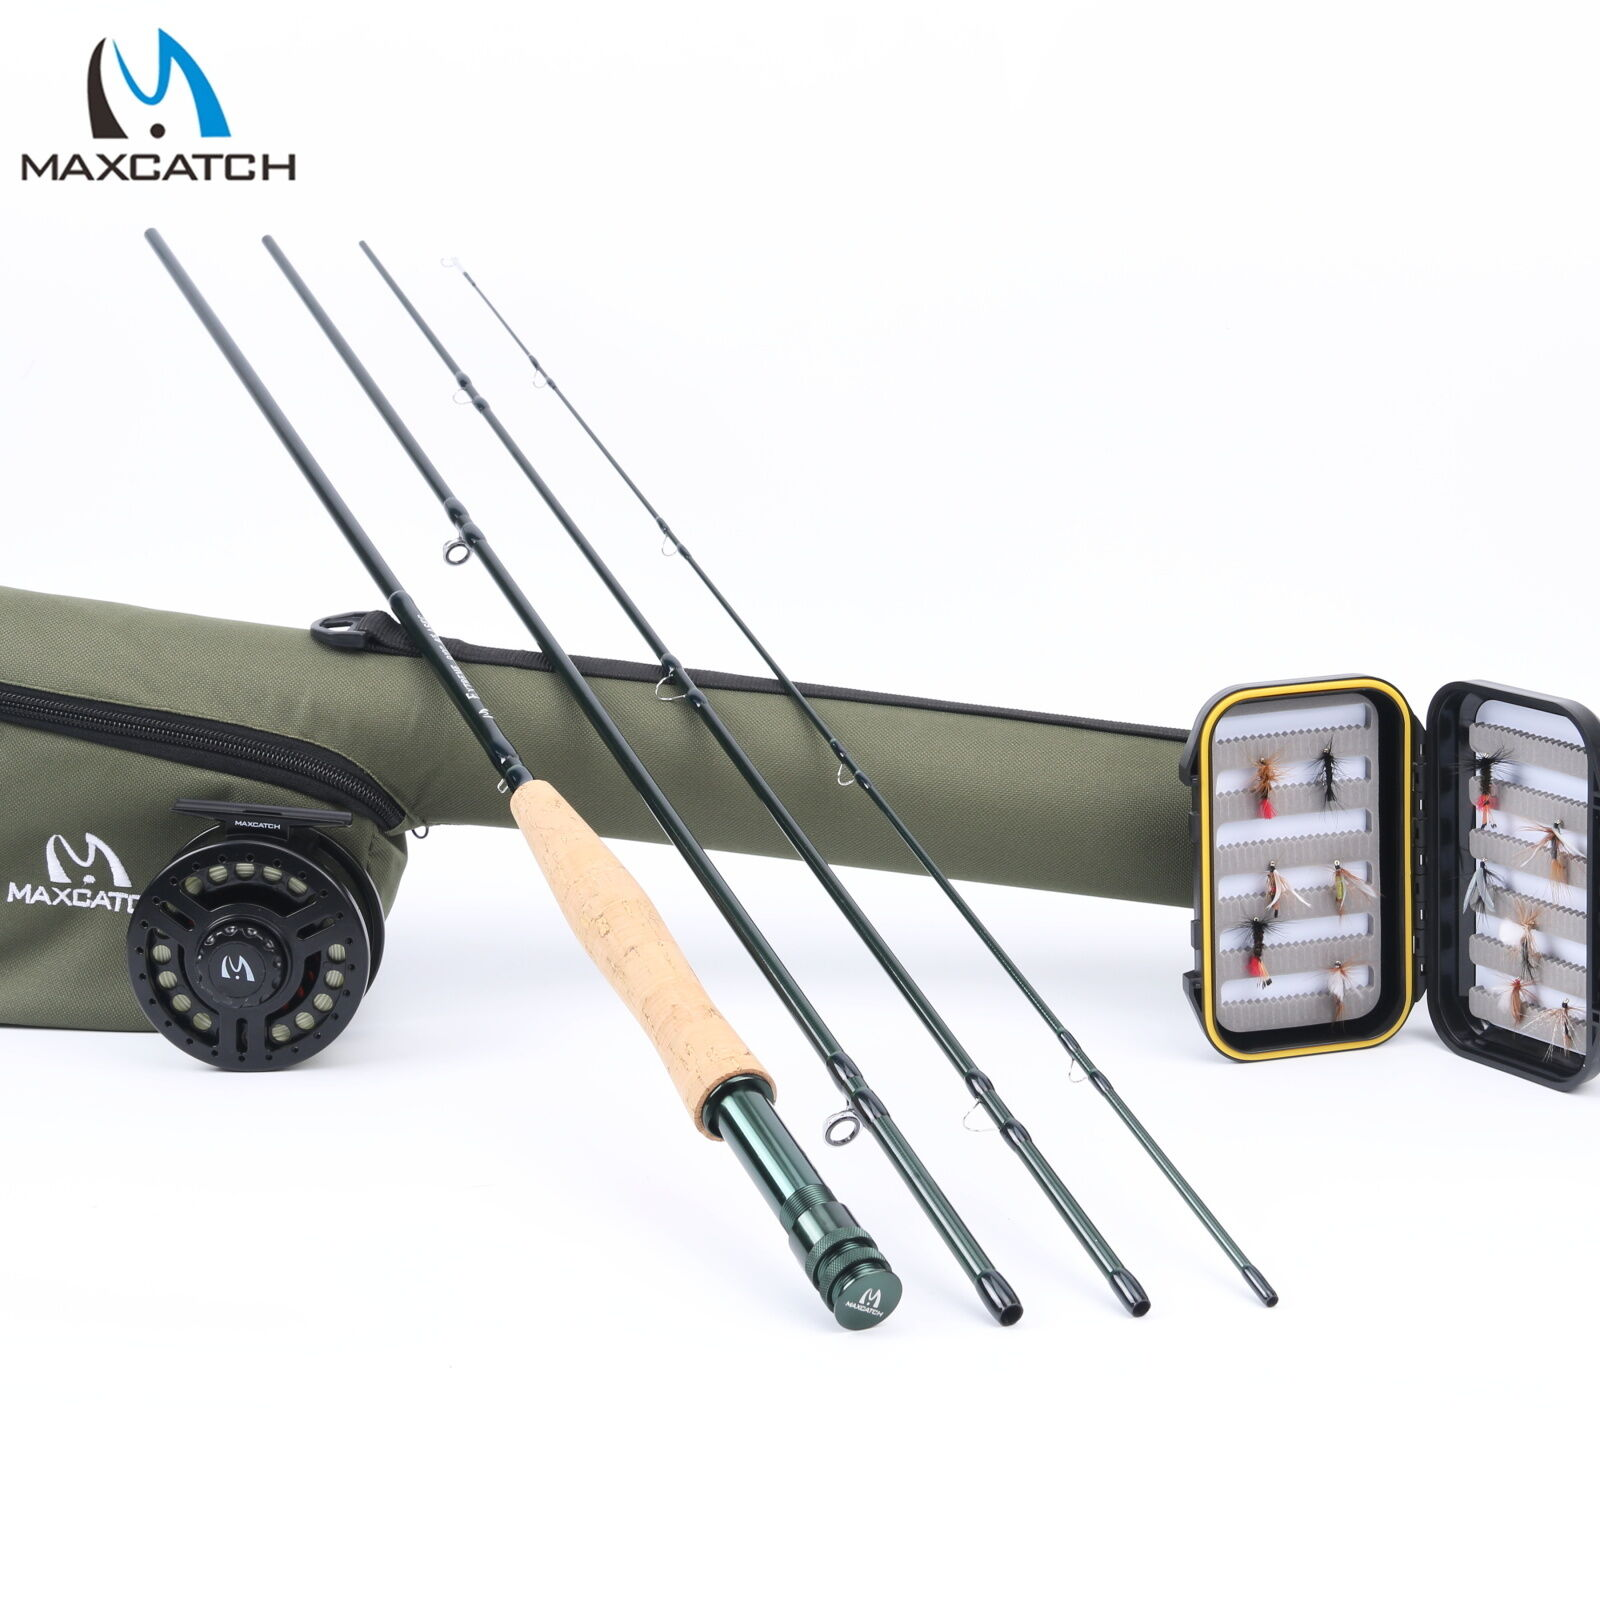 5WT Fly Fishing Combo 9FT Medium-fast Fly  Rod Graphite Reel Line Triangle Tube  hot sale